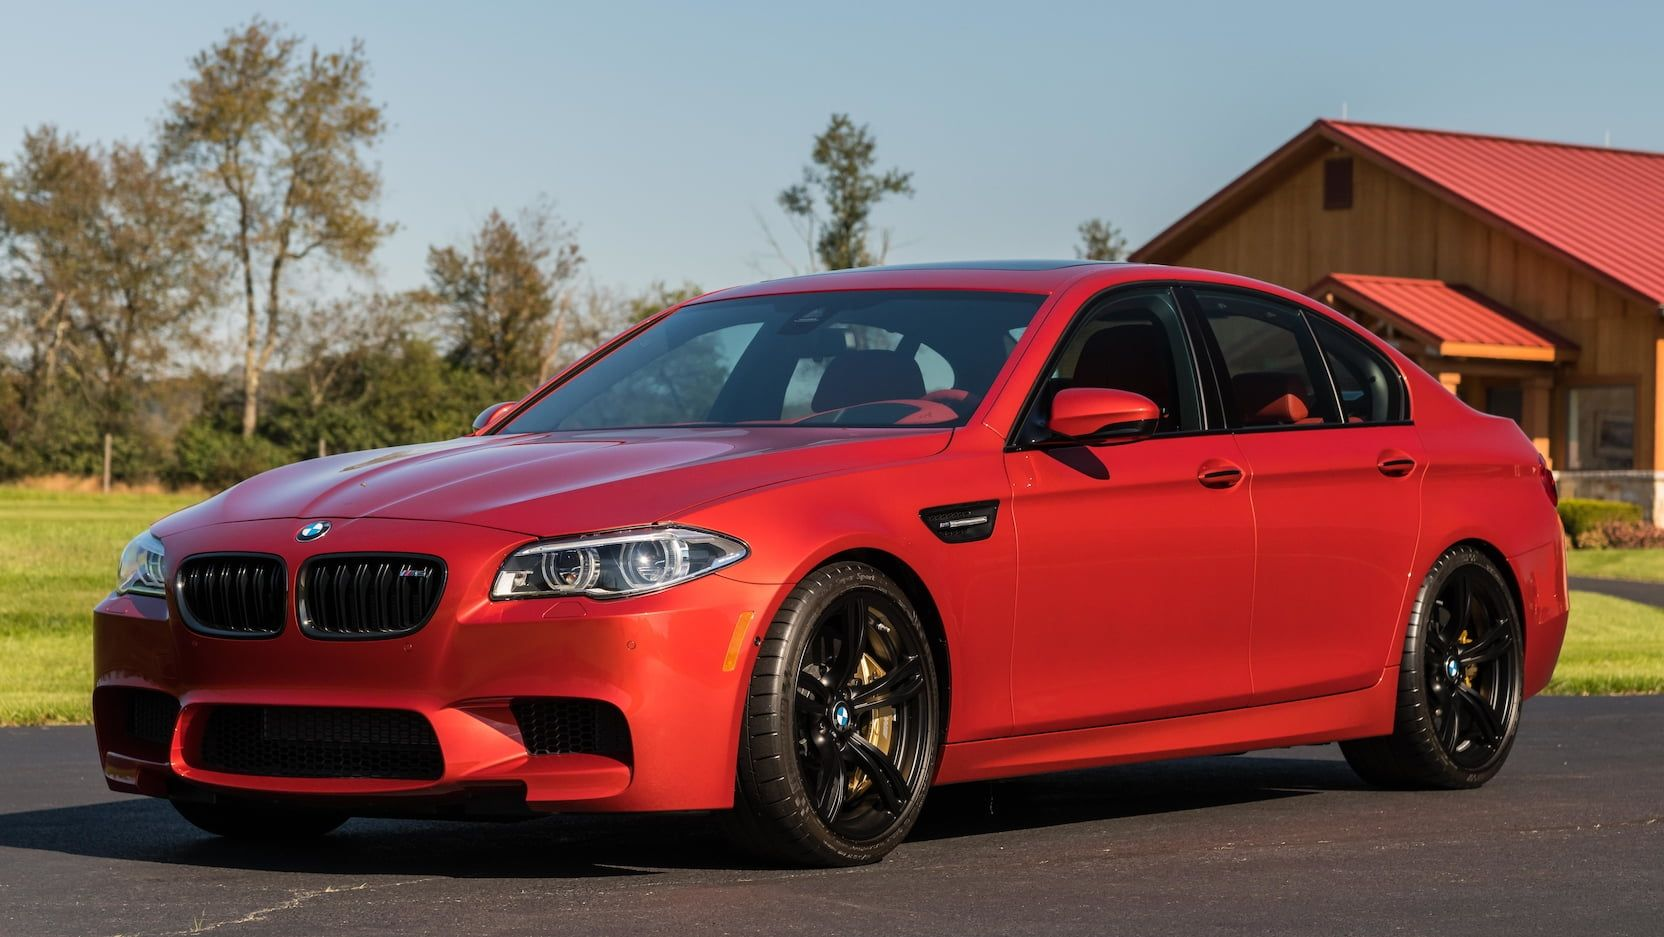 2014 Bmw M5 Sedan Presented As Lot S115 At Kissimmee Fl Bmw